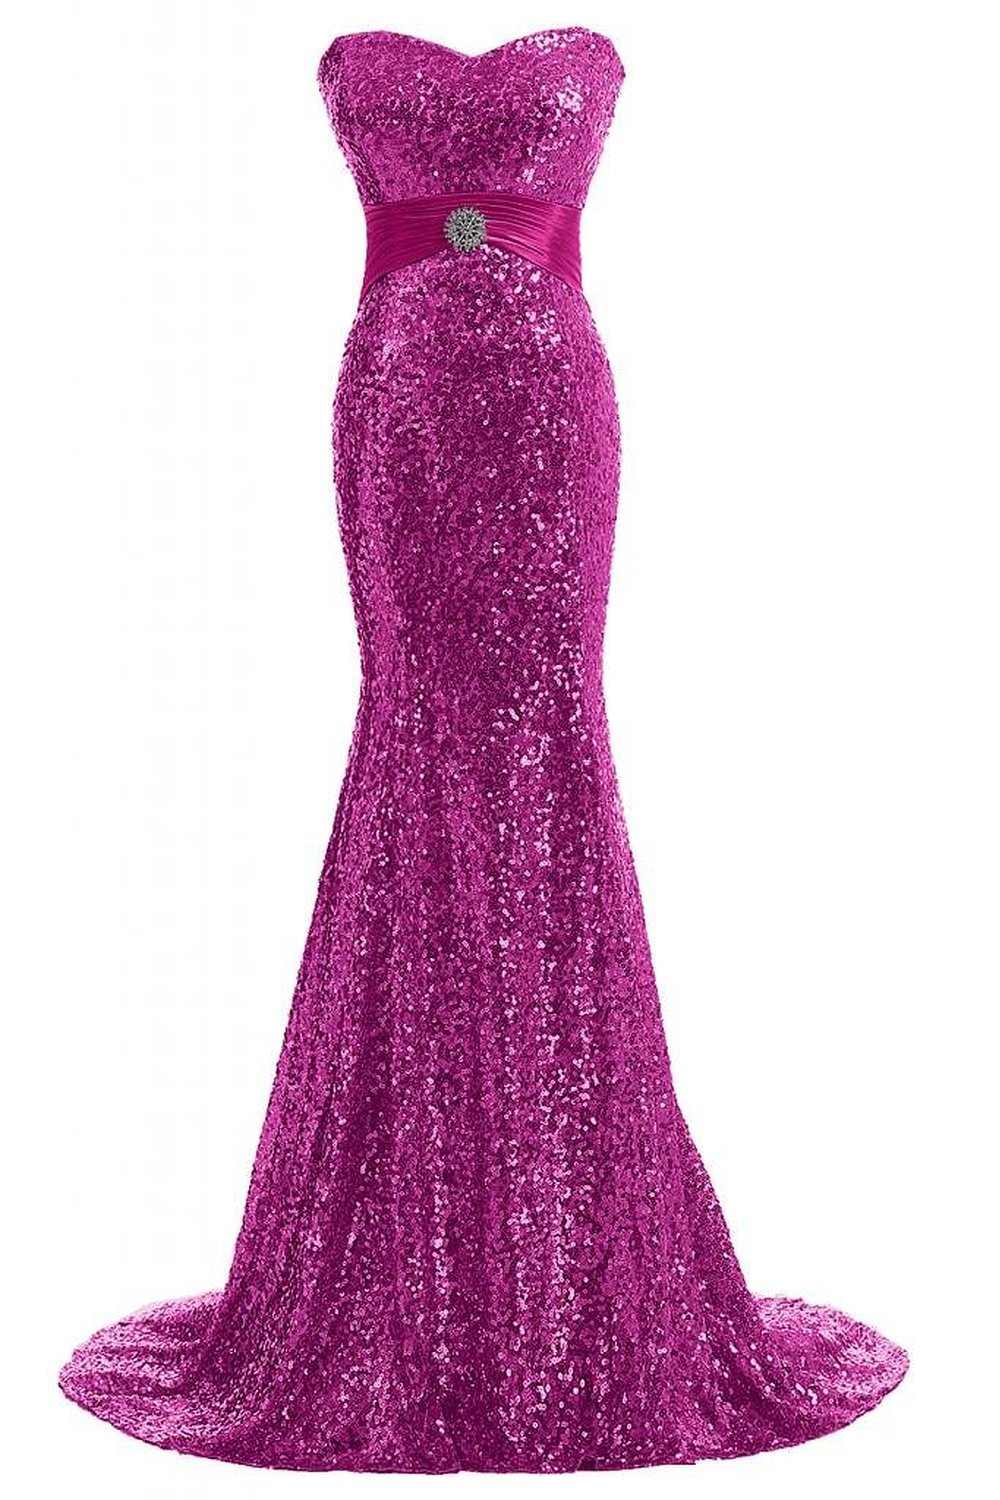 Gorgeous Bridal Top Design Glitzy Sequined Dress Fitted Long Evening Gown | Amazon.com